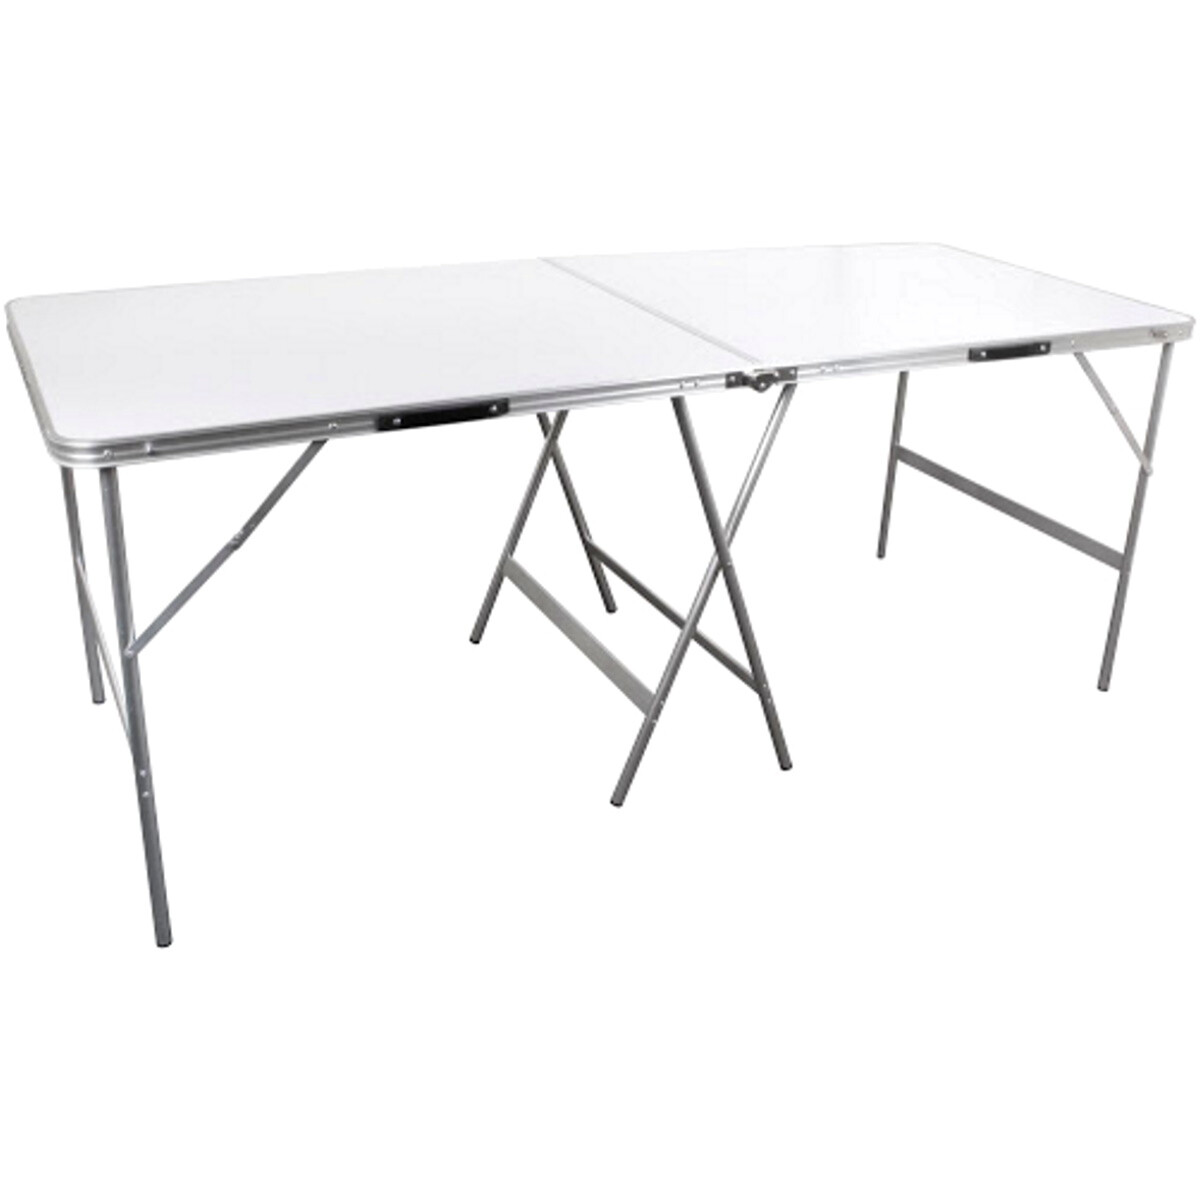 """ProDec PFPT002 Extra Wide 6' 6"""" x 2' 6"""" (2m x 800mm) Paste Table"""